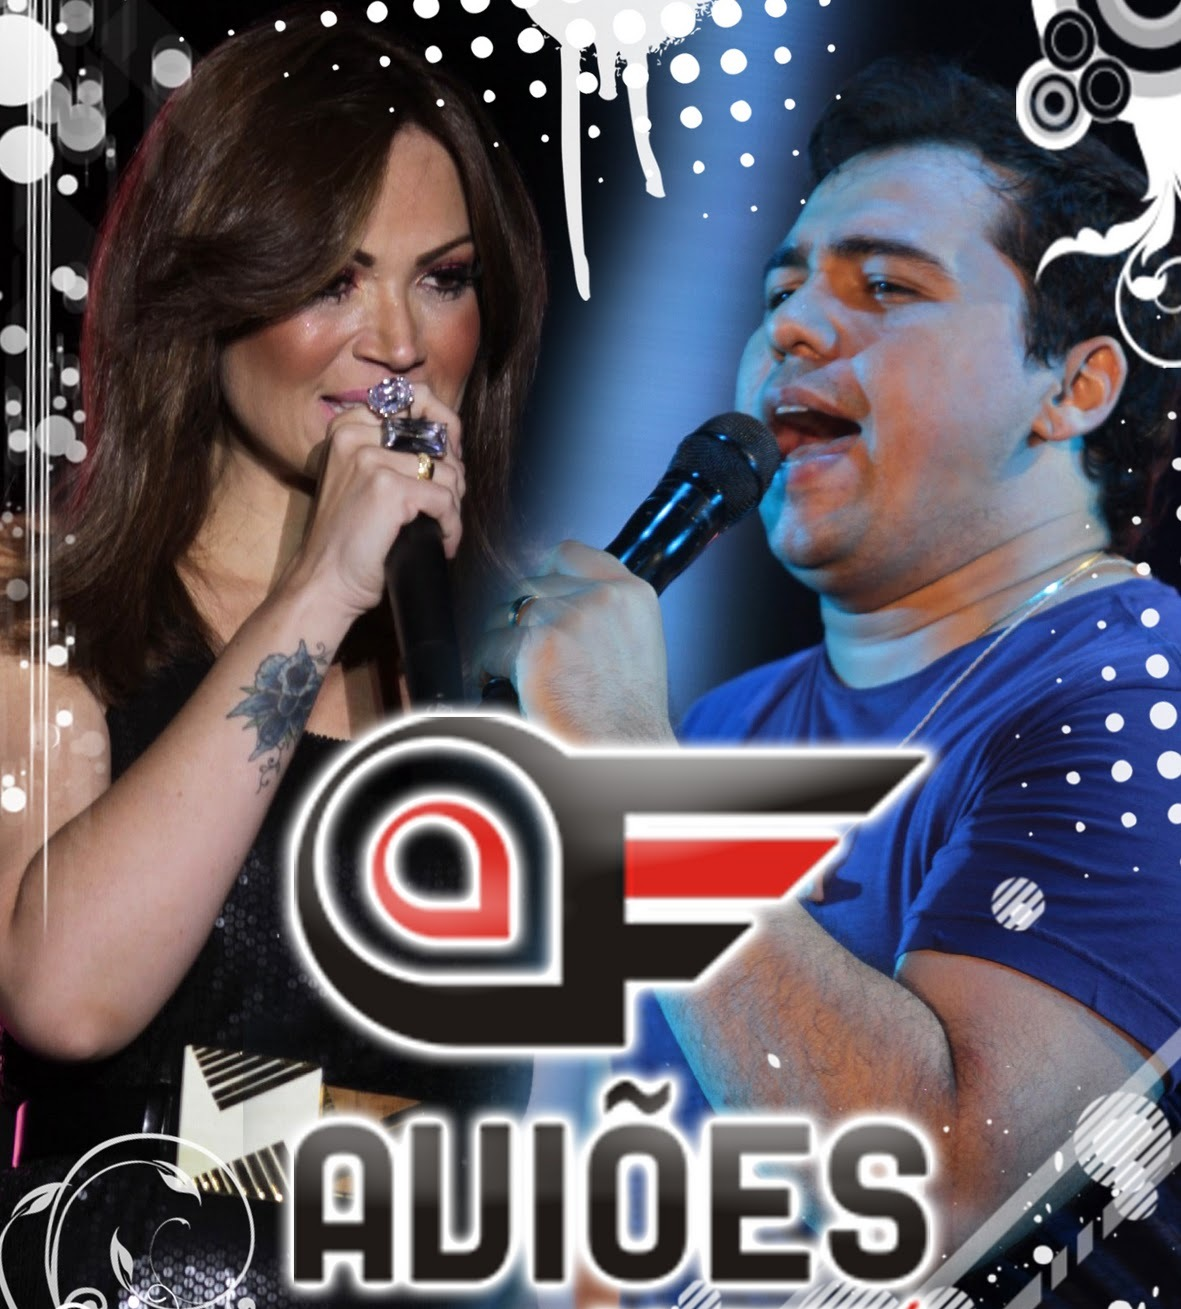 cd avioes do forro 2014 abril